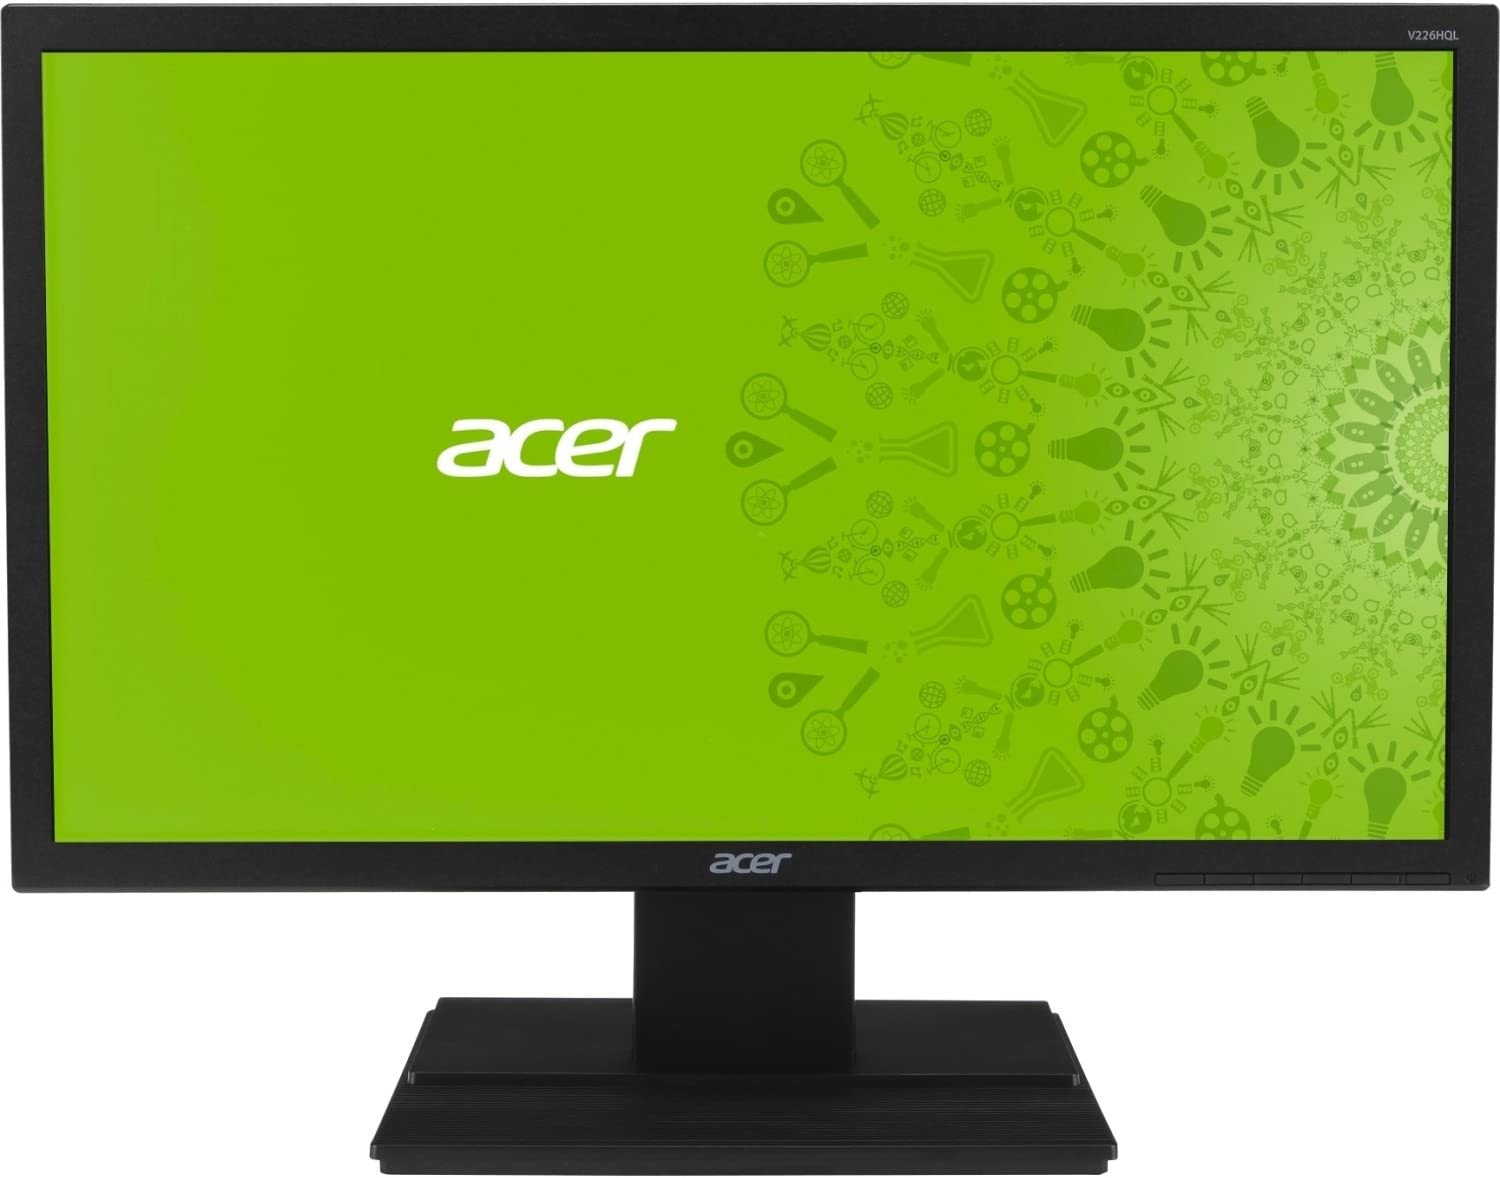 "Acer V226HQL 21.5"" Full HD Widescreen LED Monitor - 16:9 - 5 ms - 1920 x 1080 - 200 Nit - DVI - VGA - Black UM.WV6AA.B01 (AcerUM.WV6AA.B01 )"